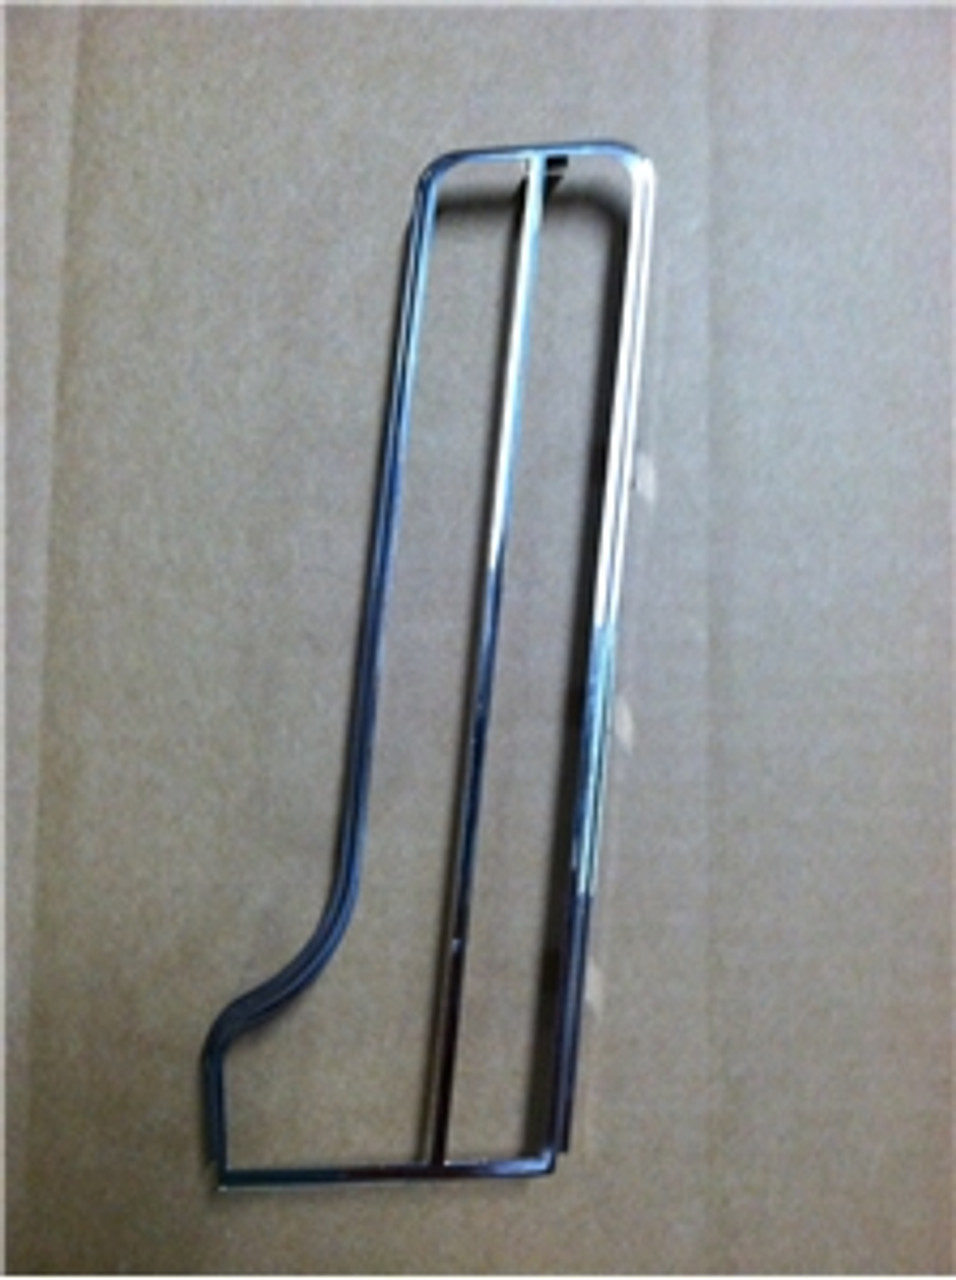 1964-67 Gas Pedal Trim, For Rubber Pedal GP1028 Only.